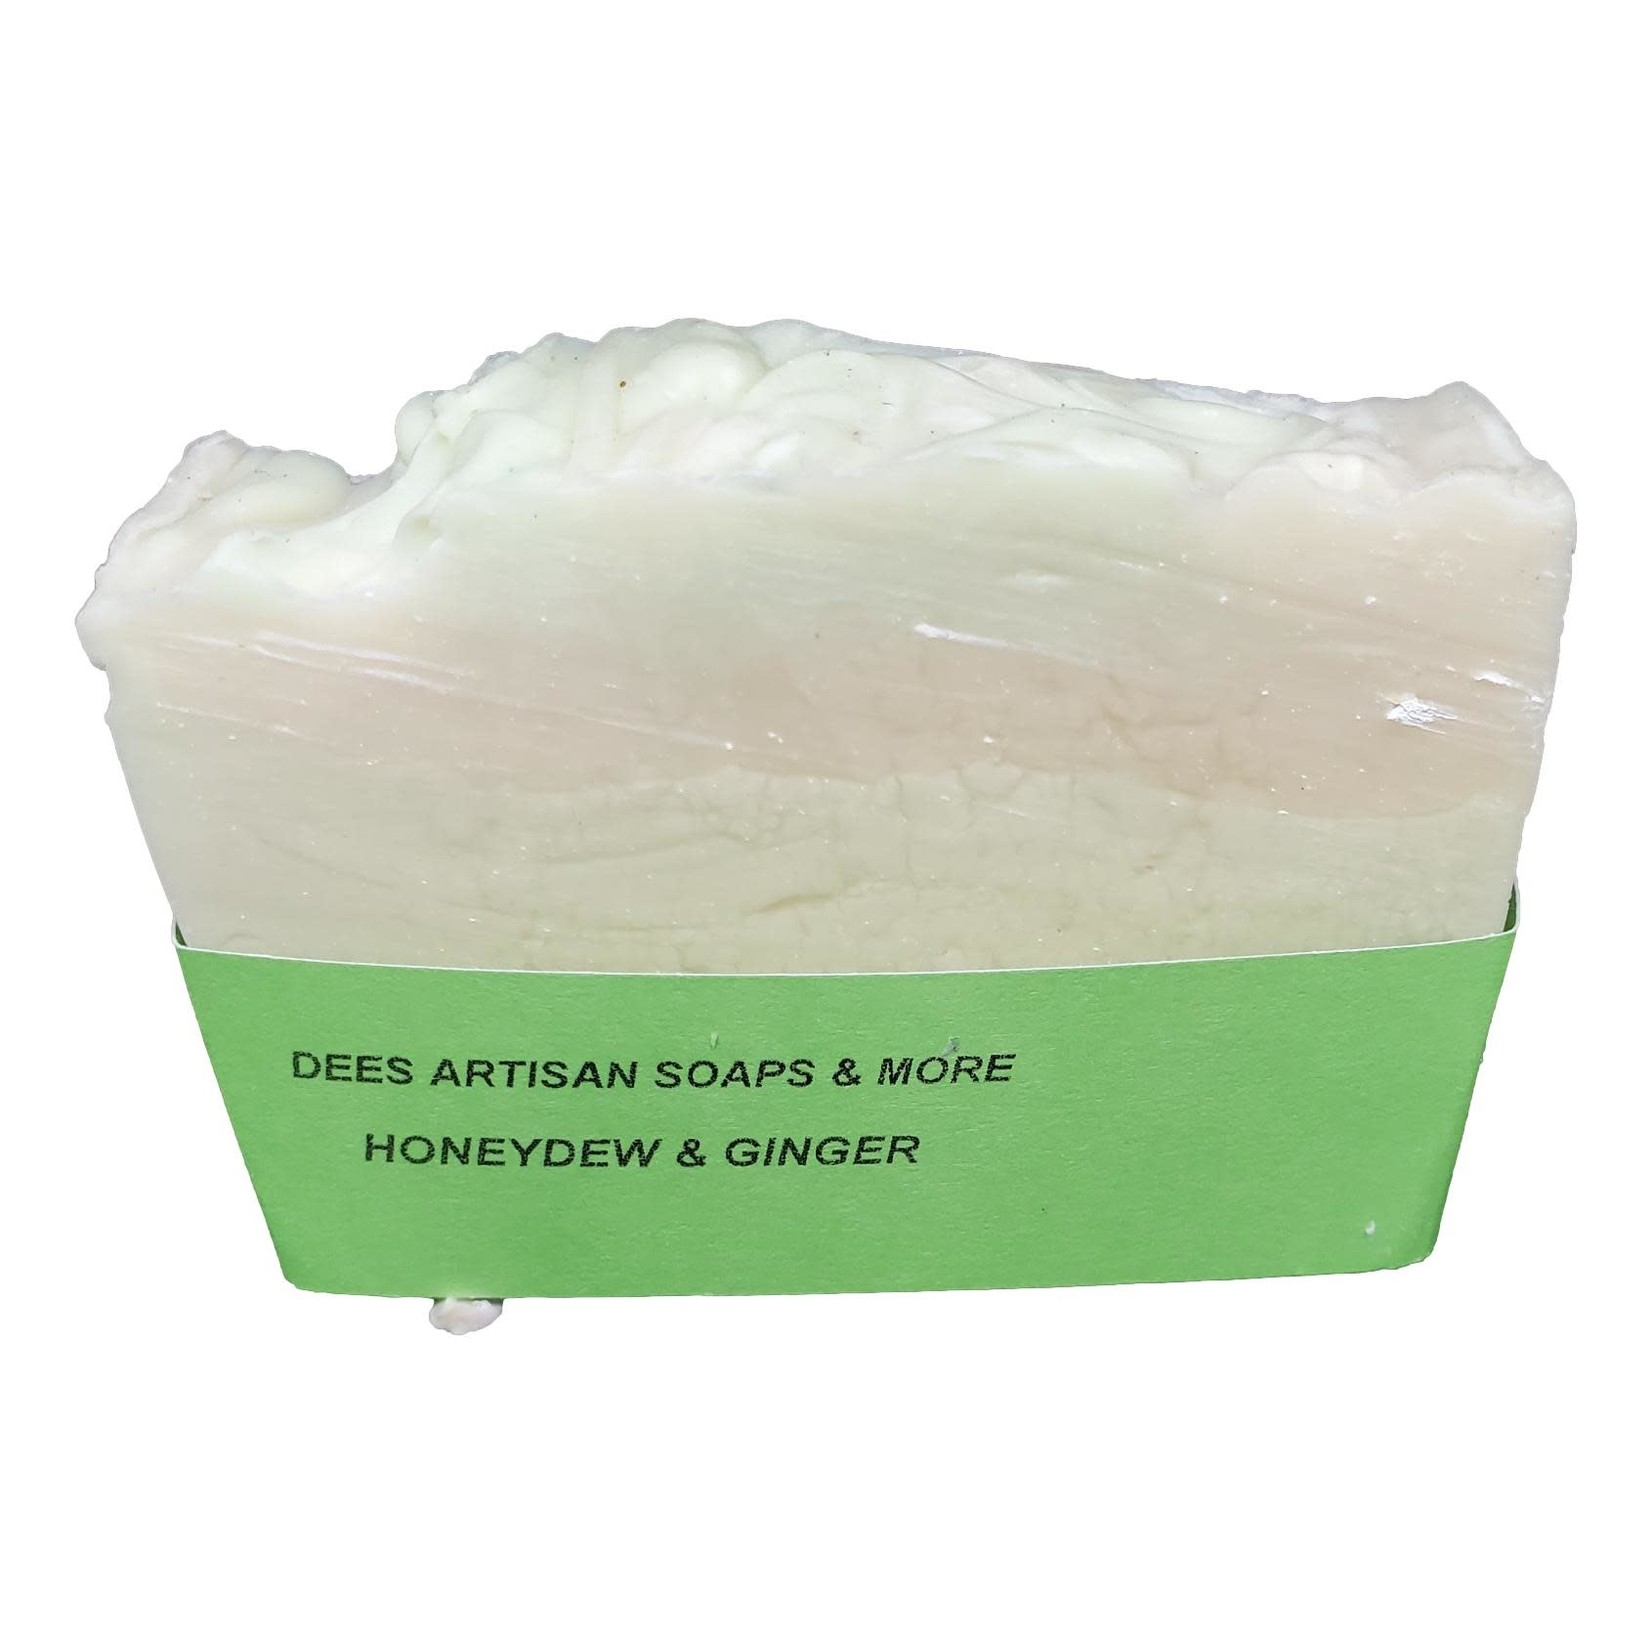 Dee's Artisan Soaps and More Honeydew & Ginger Soap